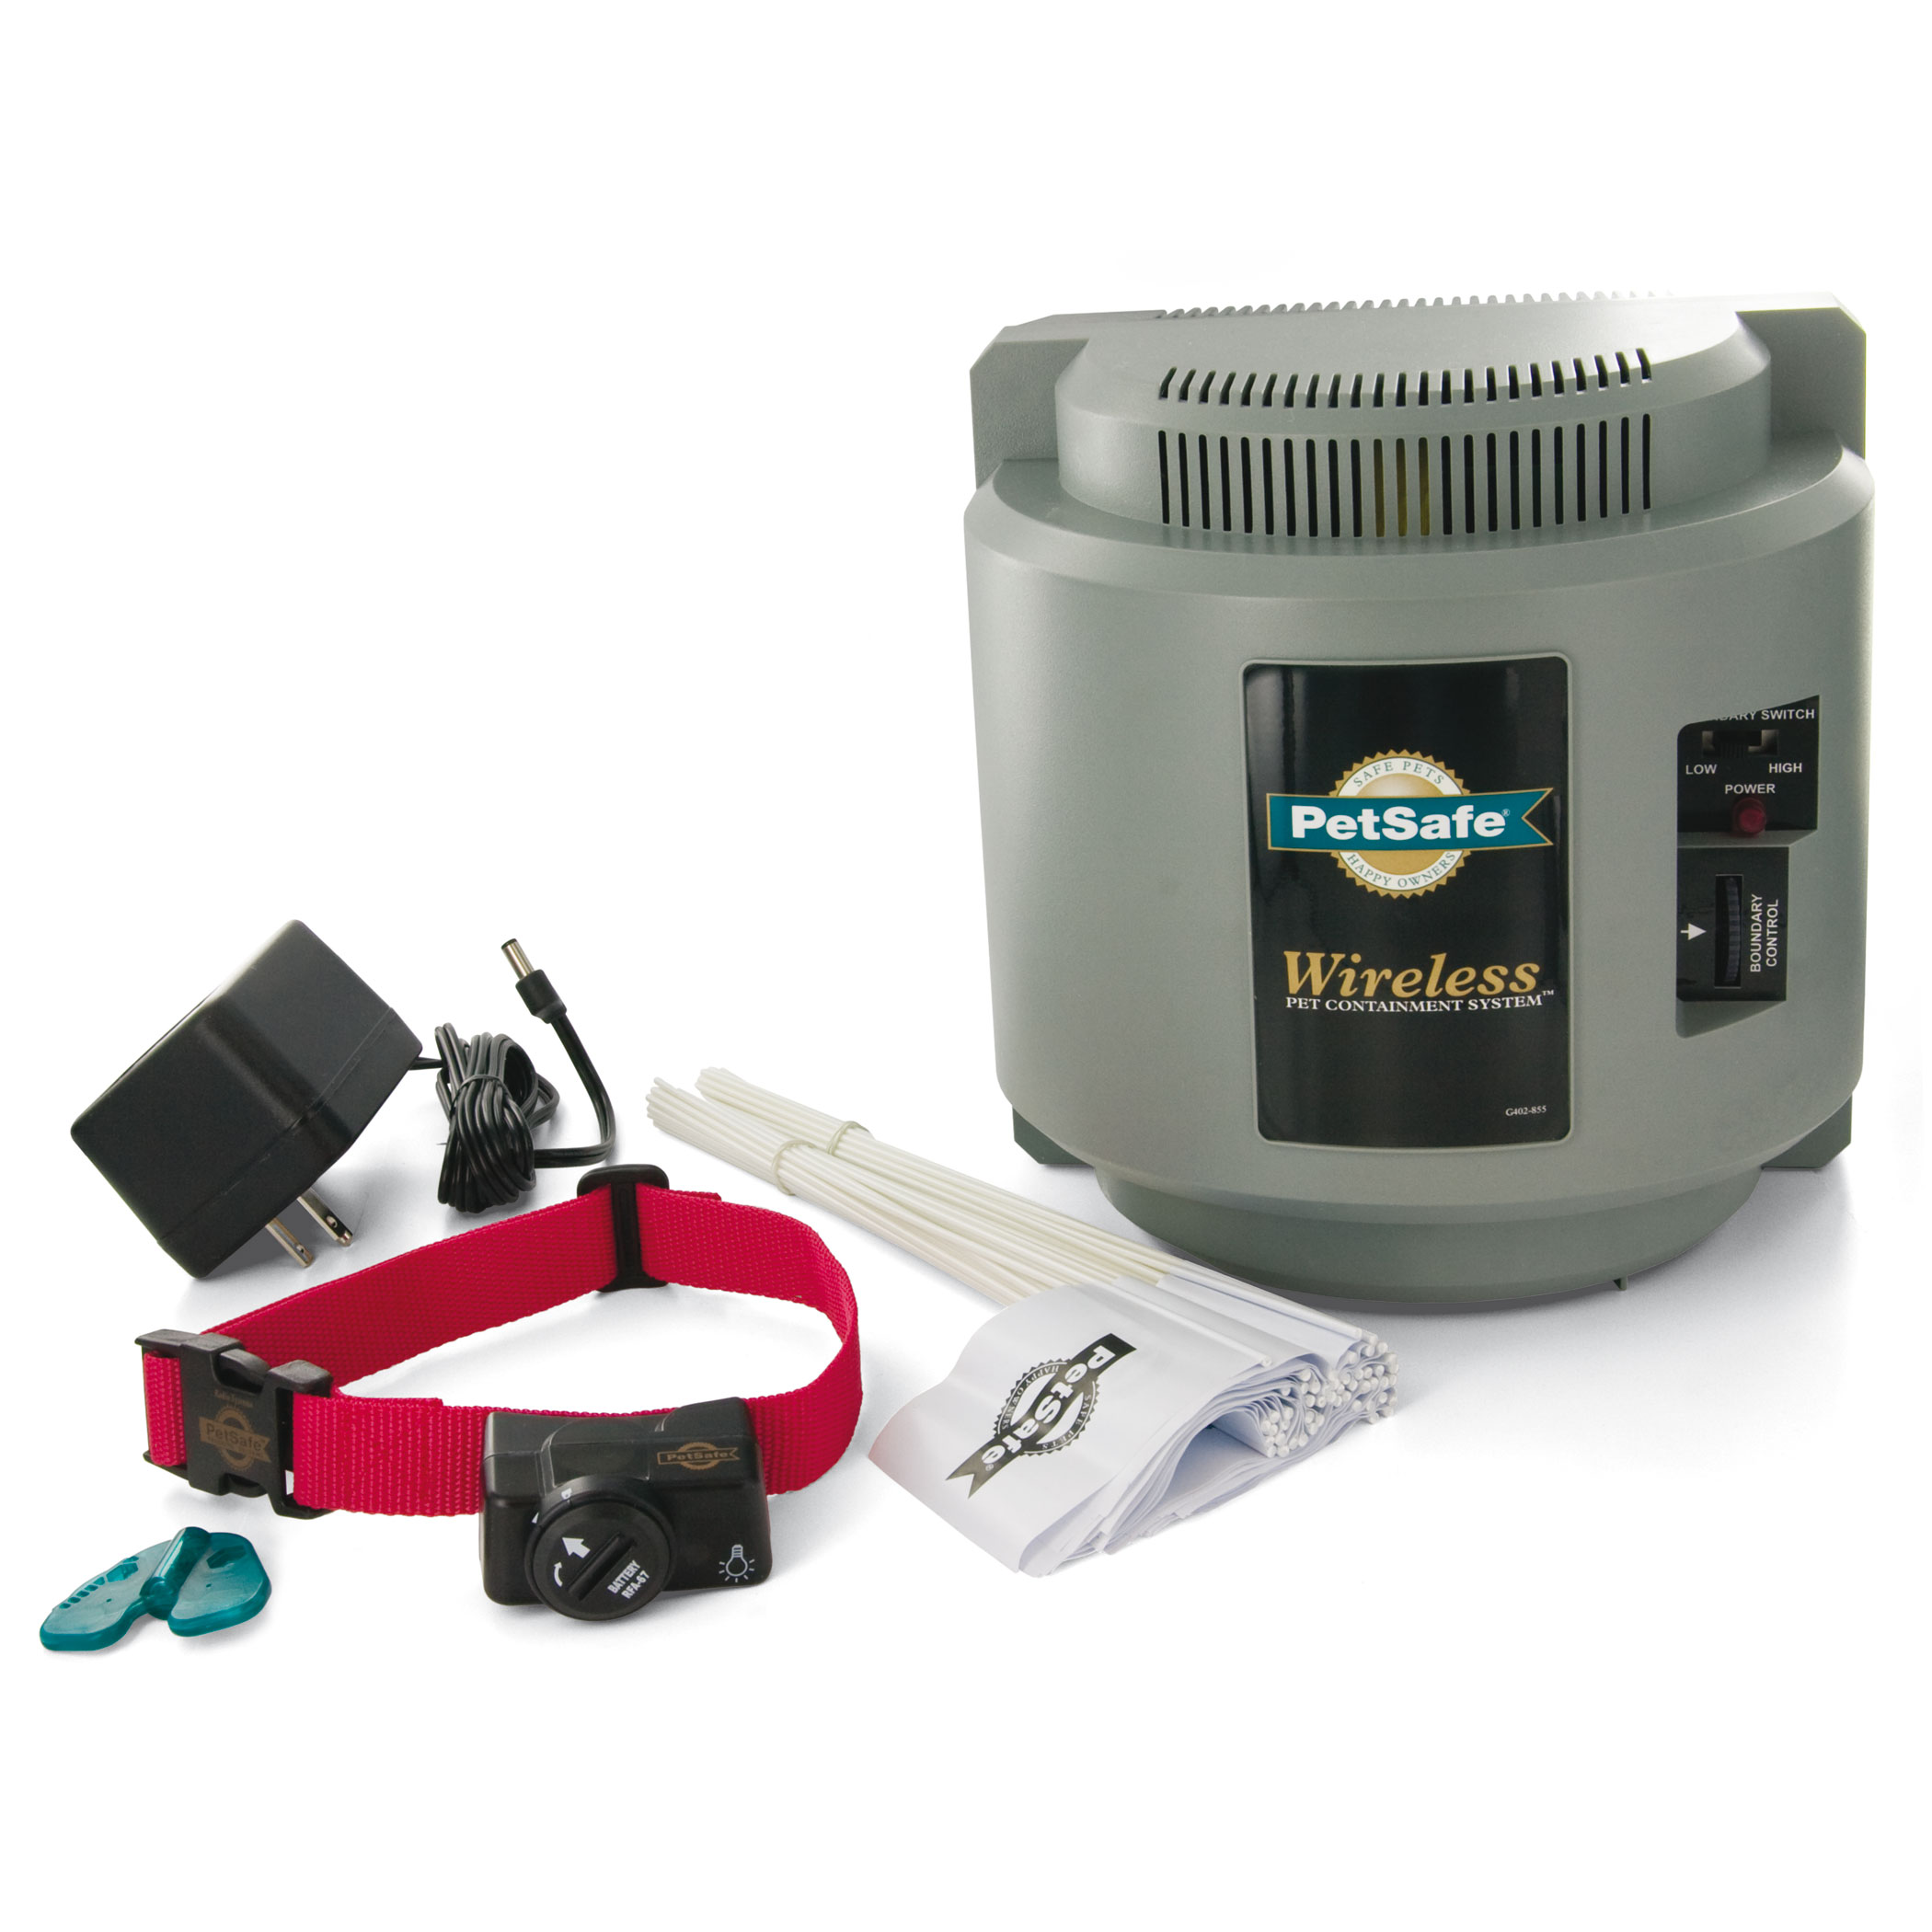 PetSafe Wireless Containment System - PIF-300